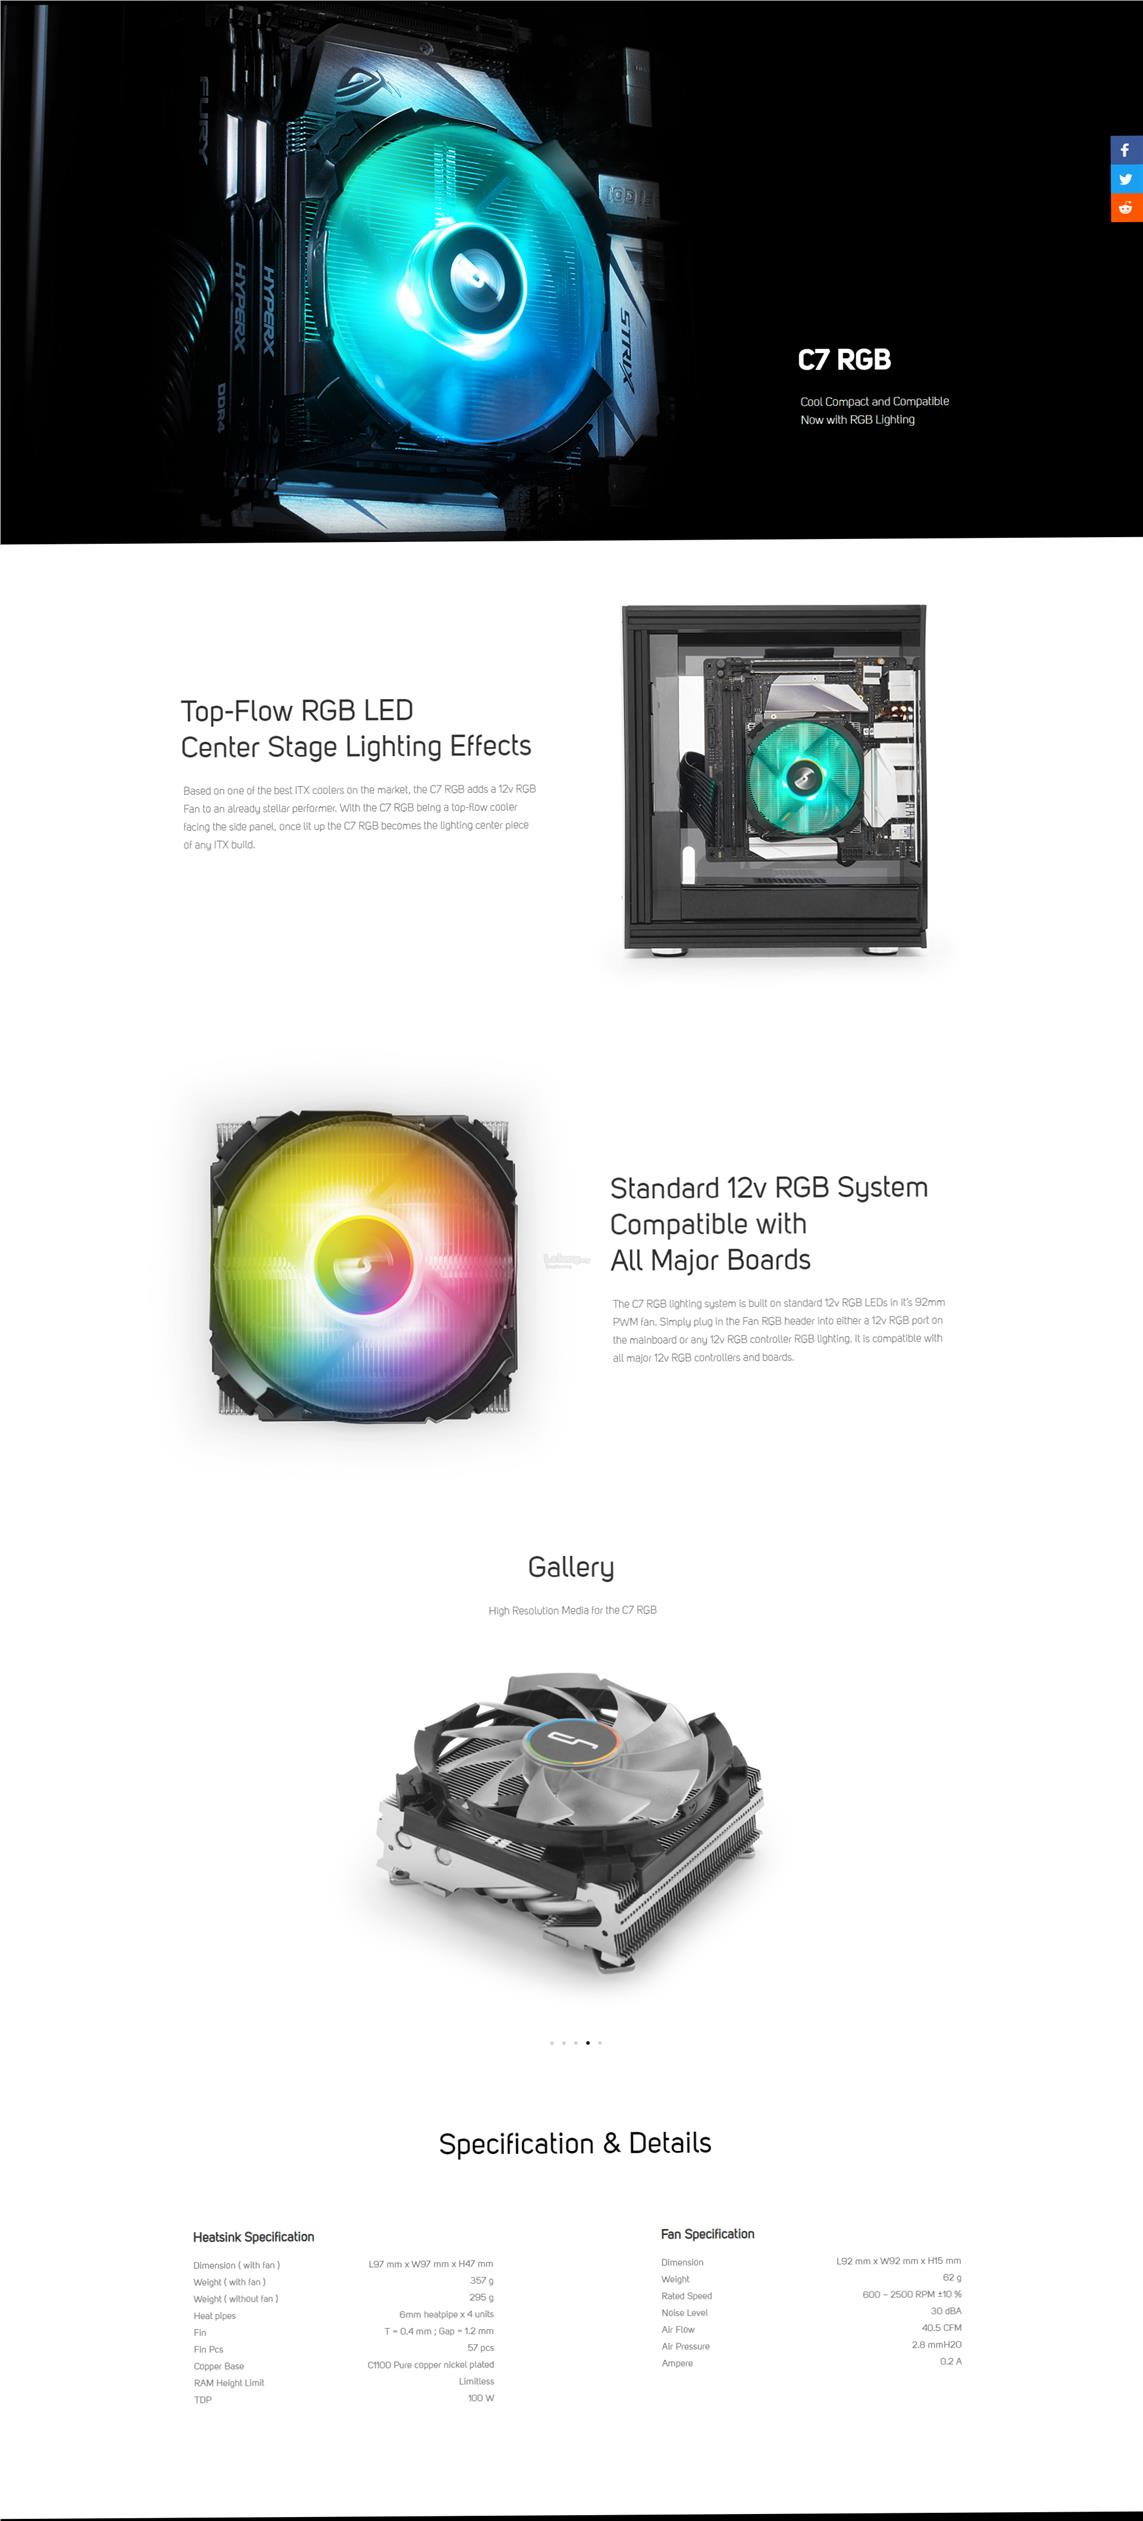 # CRYORIG C7 RGB - Low Profile CPU Air Cooler # Design for mini-ITX